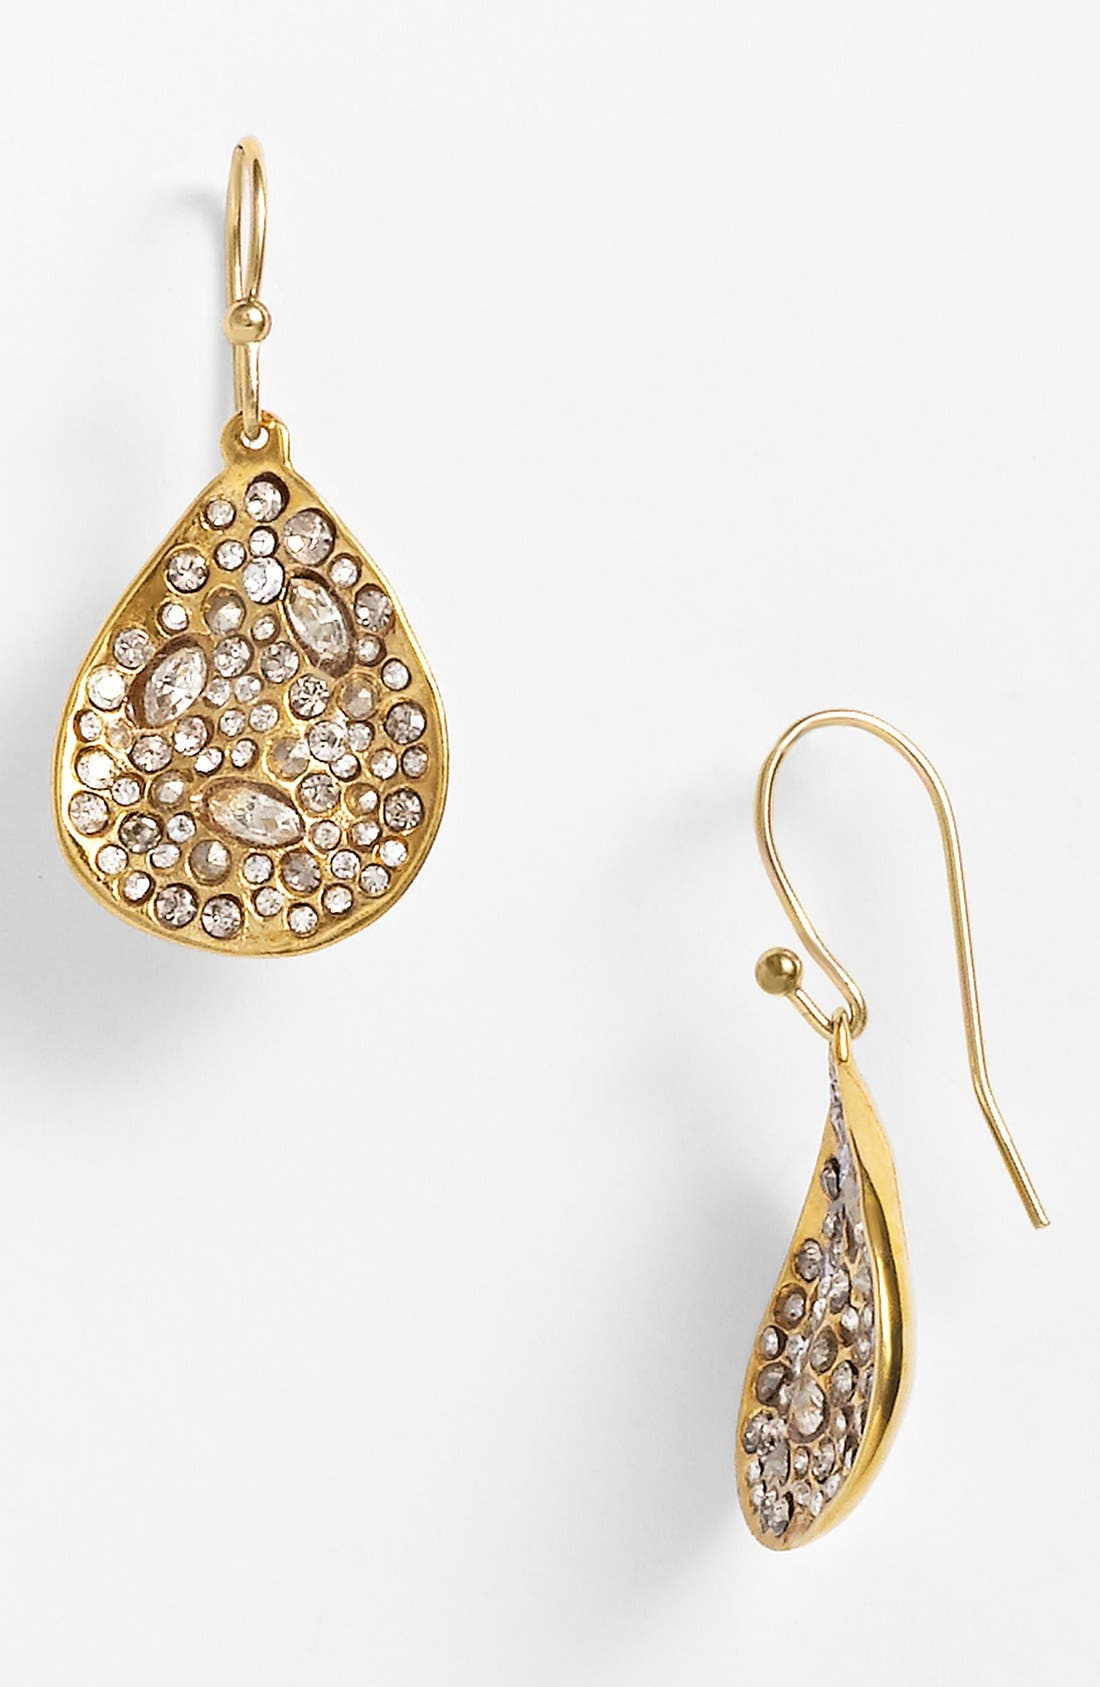 Main Image - Alexis Bittar 'Miss Havisham' Crystal Encrusted Teardrop Earrings